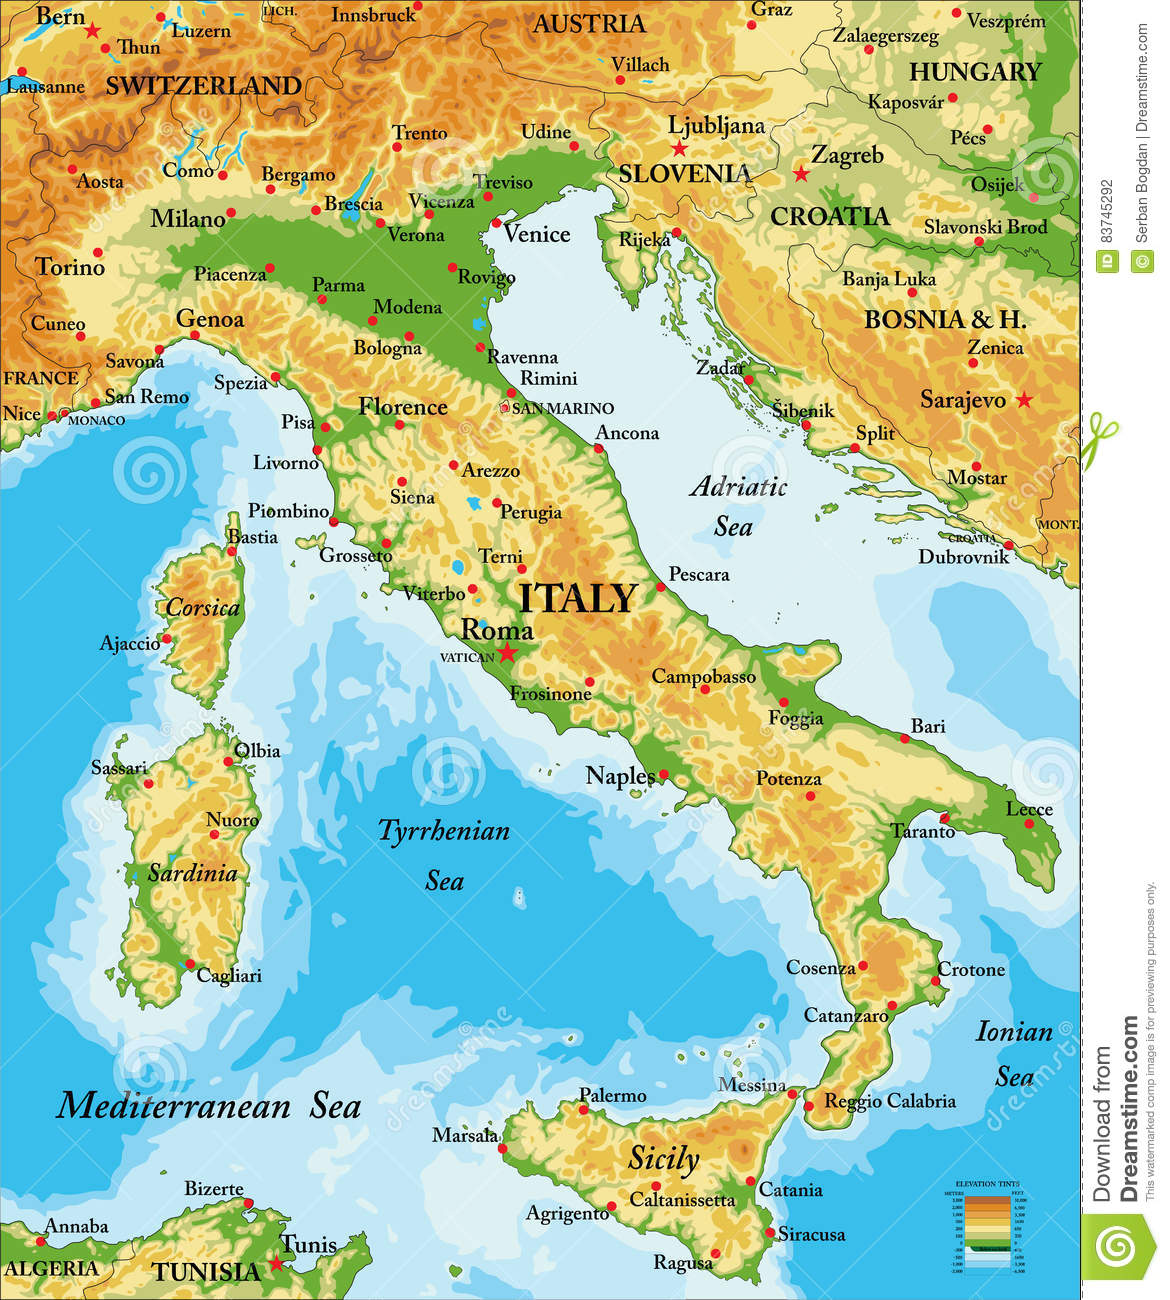 Map Of Italy And Austria With Cities.Italy Relief Map Stock Vector Illustration Of Austria 83745292